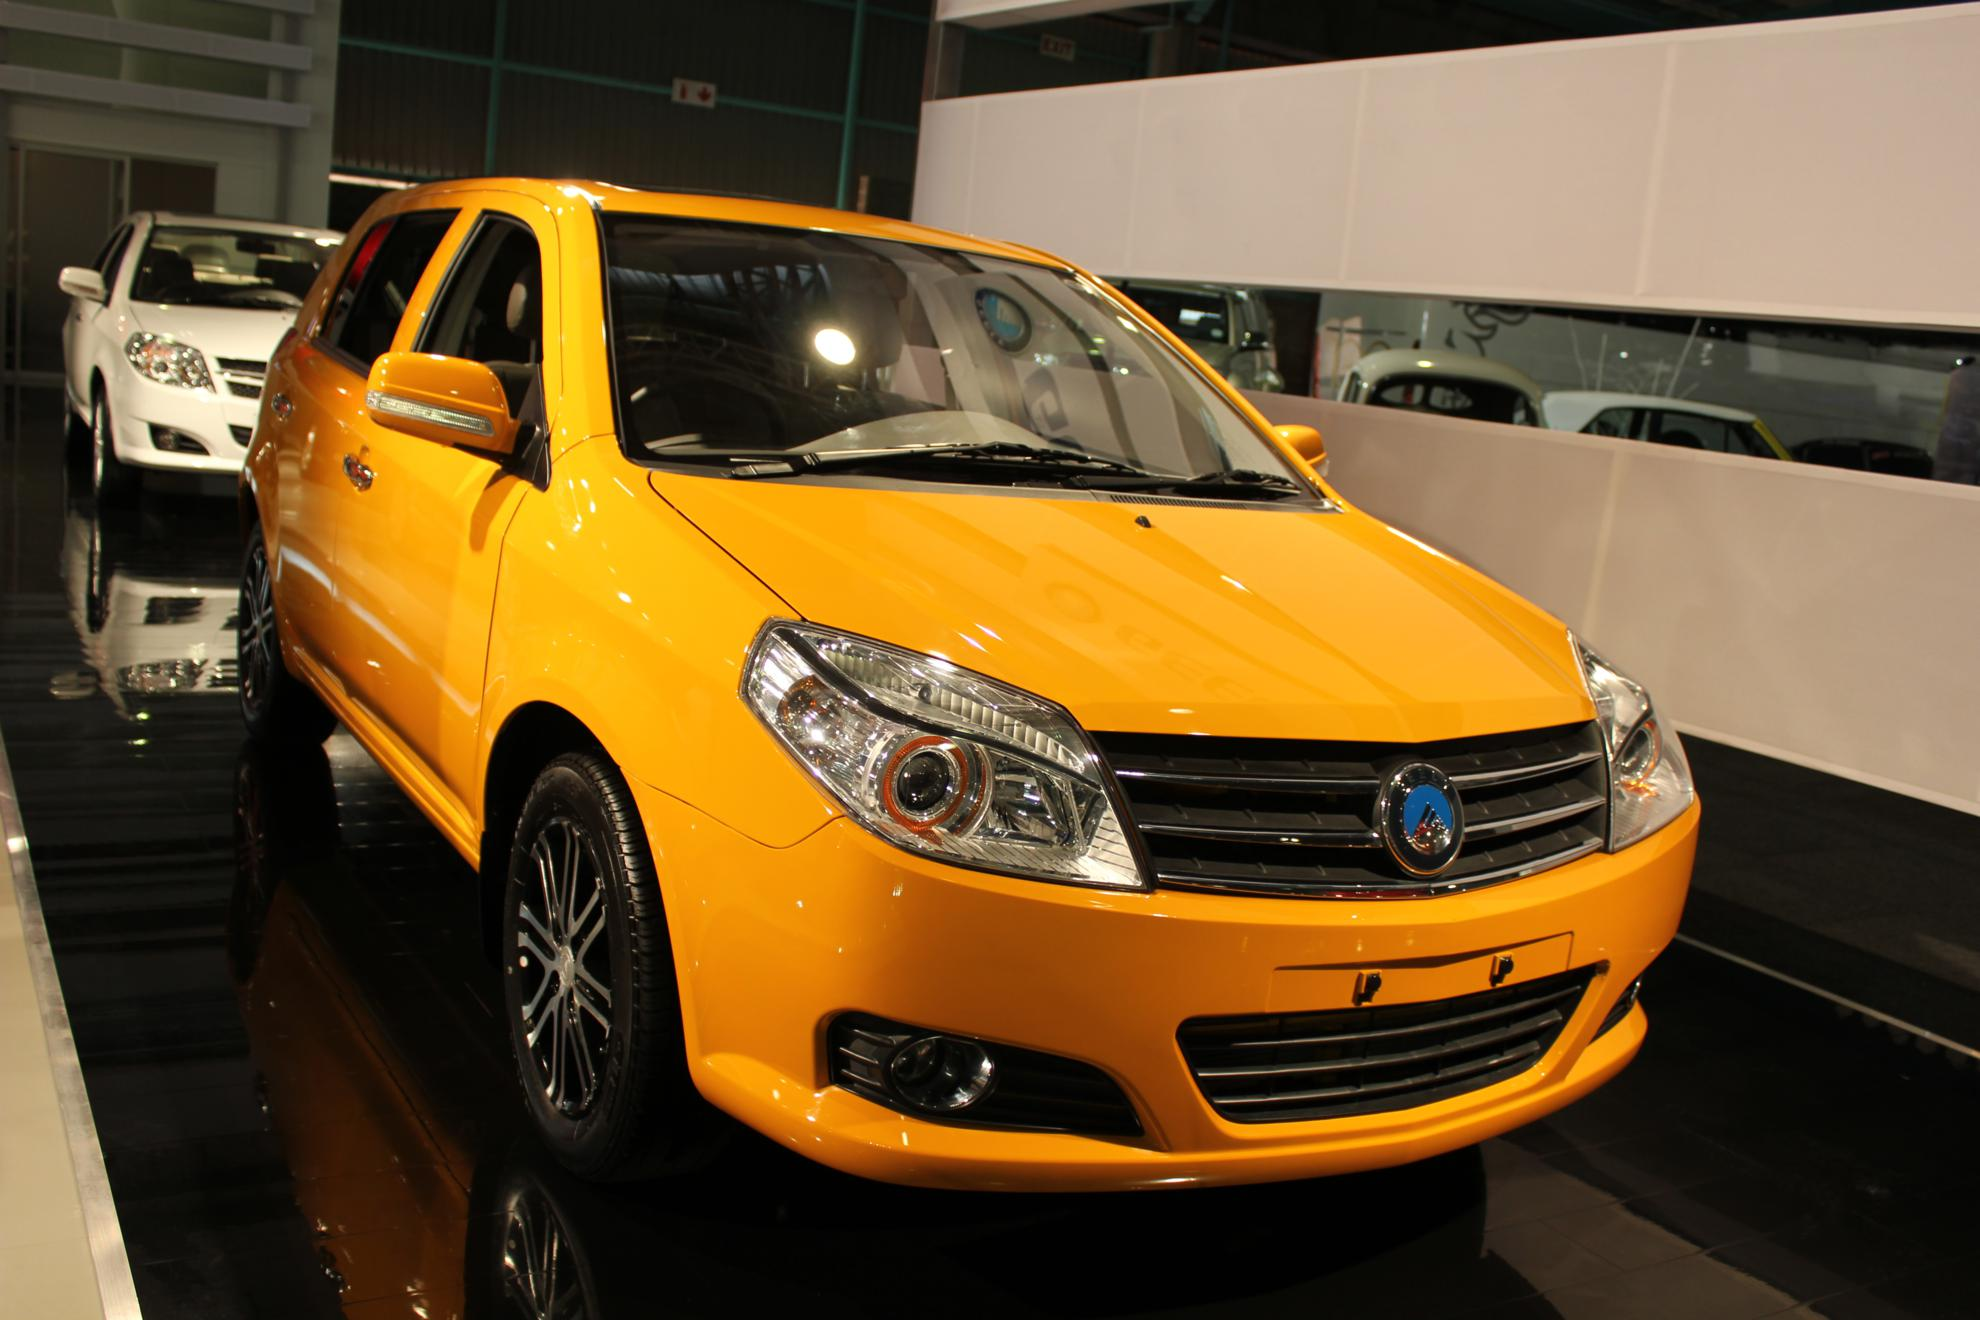 Geely at the Johannesburg Motor Show 2011